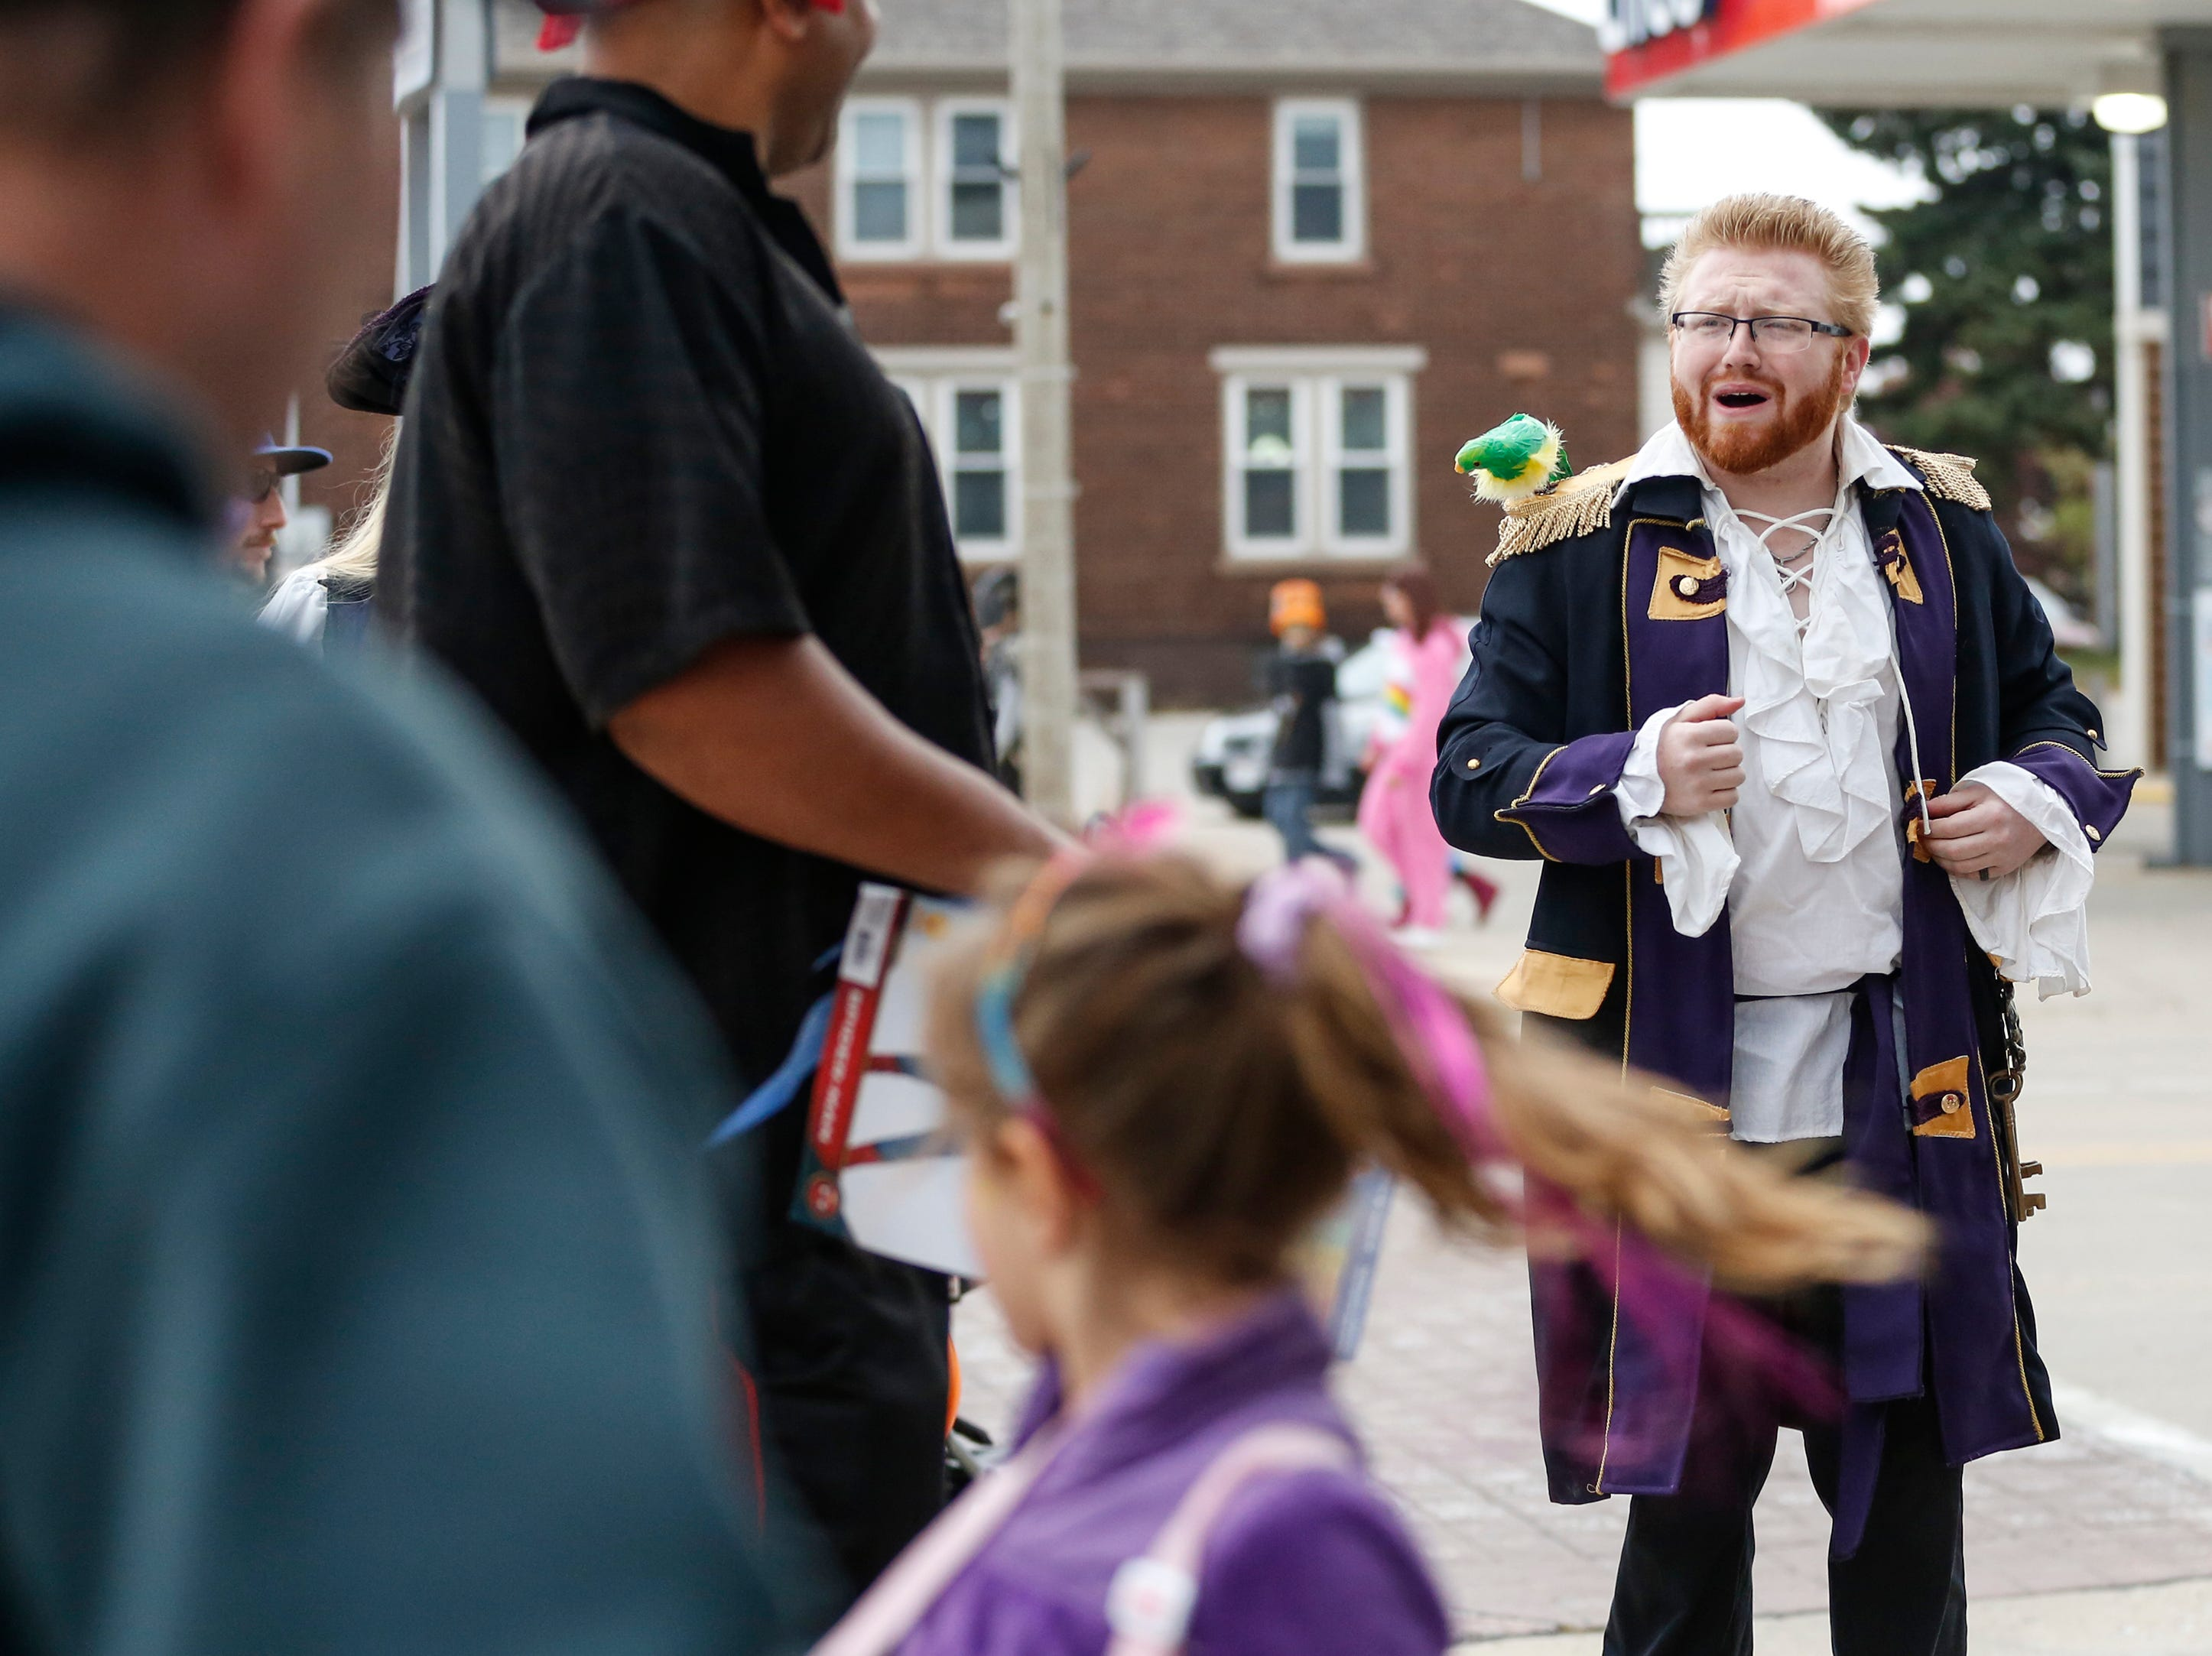 Shaughn Van Ginkel ushers people into the Two Rivers Clothing Company in his best pirate impression to get their treats during Downtown Trick or Treat Saturday, October 27, 2018, in Two Rivers, Wis. Joshua Clark/USA TODAY NETWORK-Wisconsin